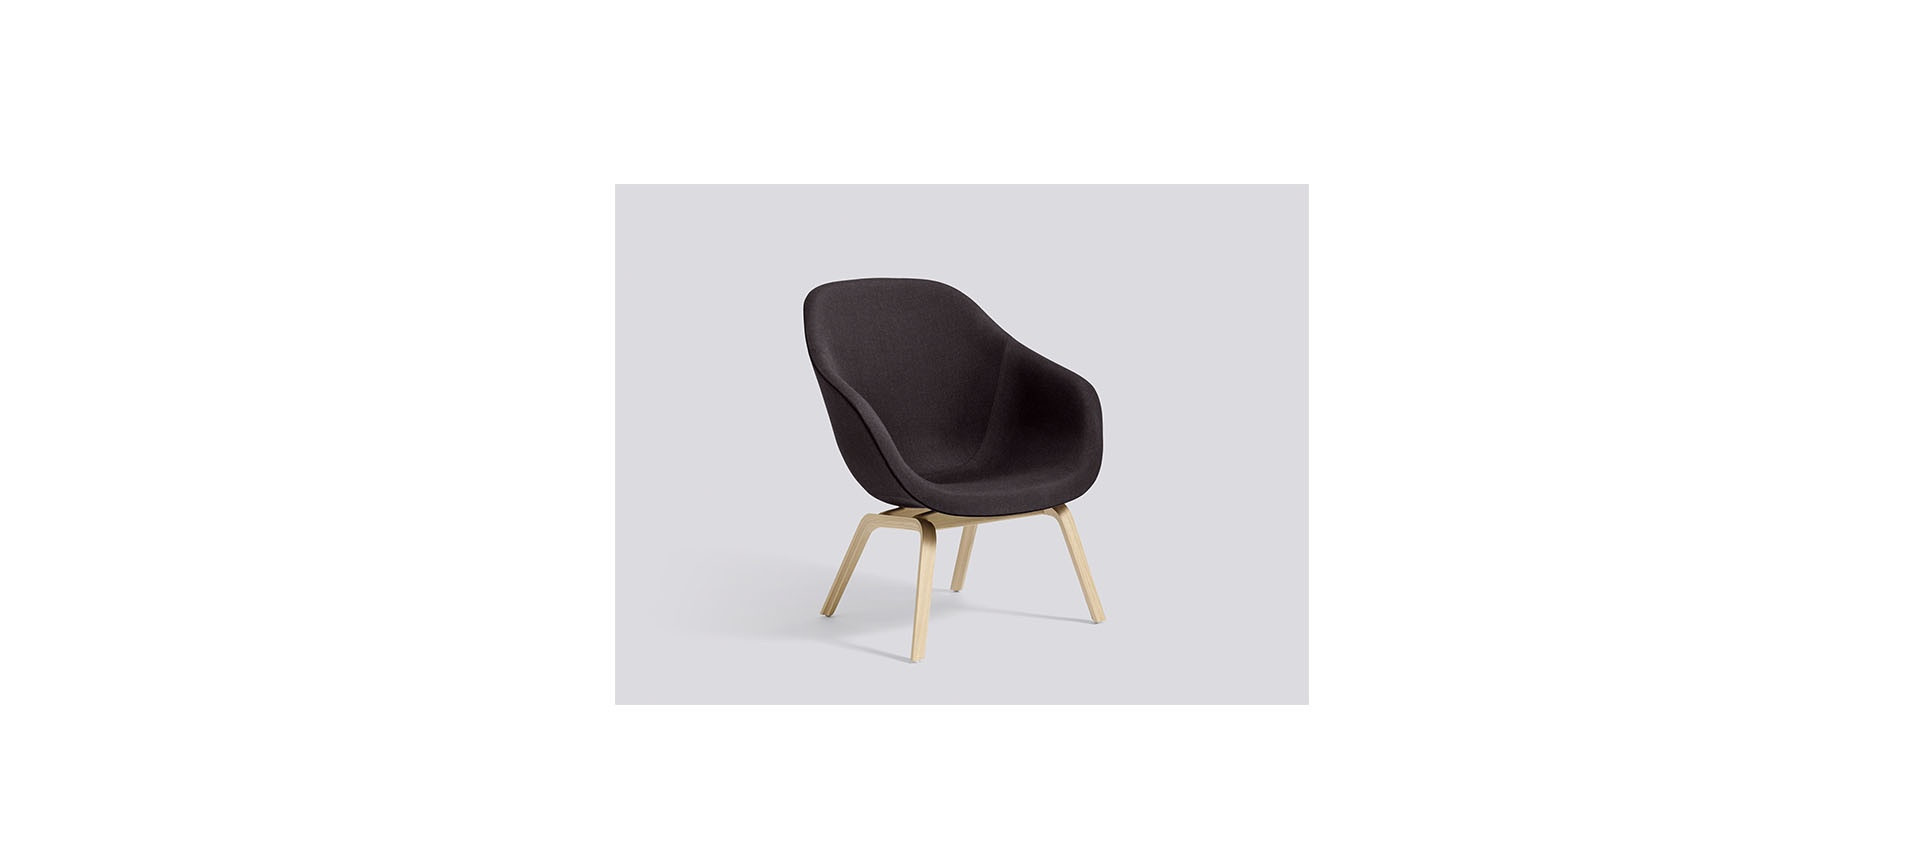 Surprising Fauteuil About A Lounge Aal83 Hay Hay Blou Ibusinesslaw Wood Chair Design Ideas Ibusinesslaworg